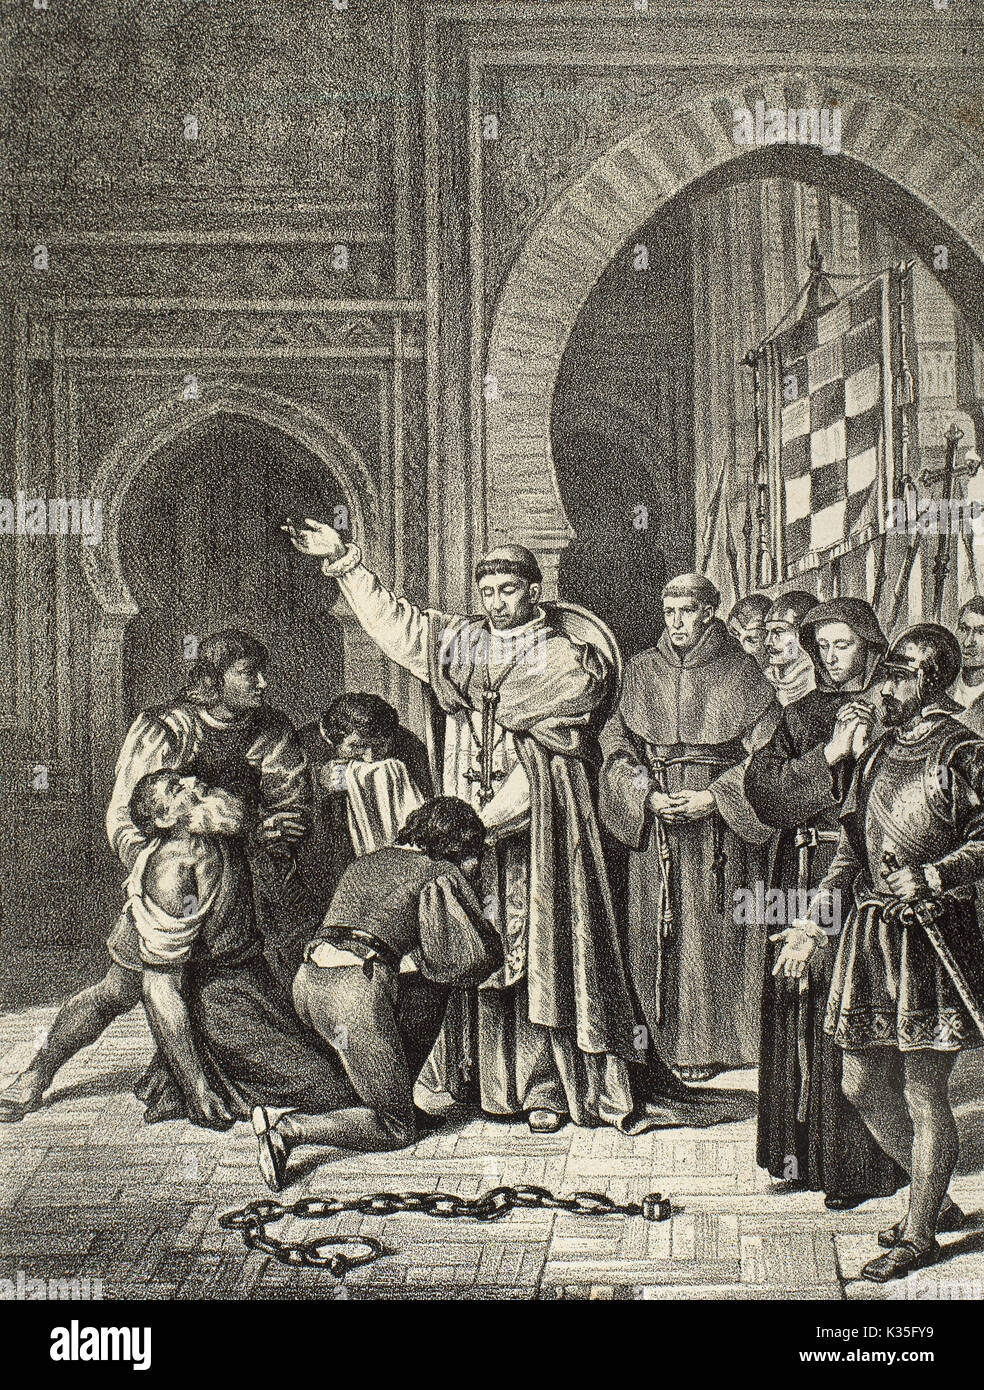 The Spanish conquest of Oran, May 17, 1509, by the Hispanic Monarchy when